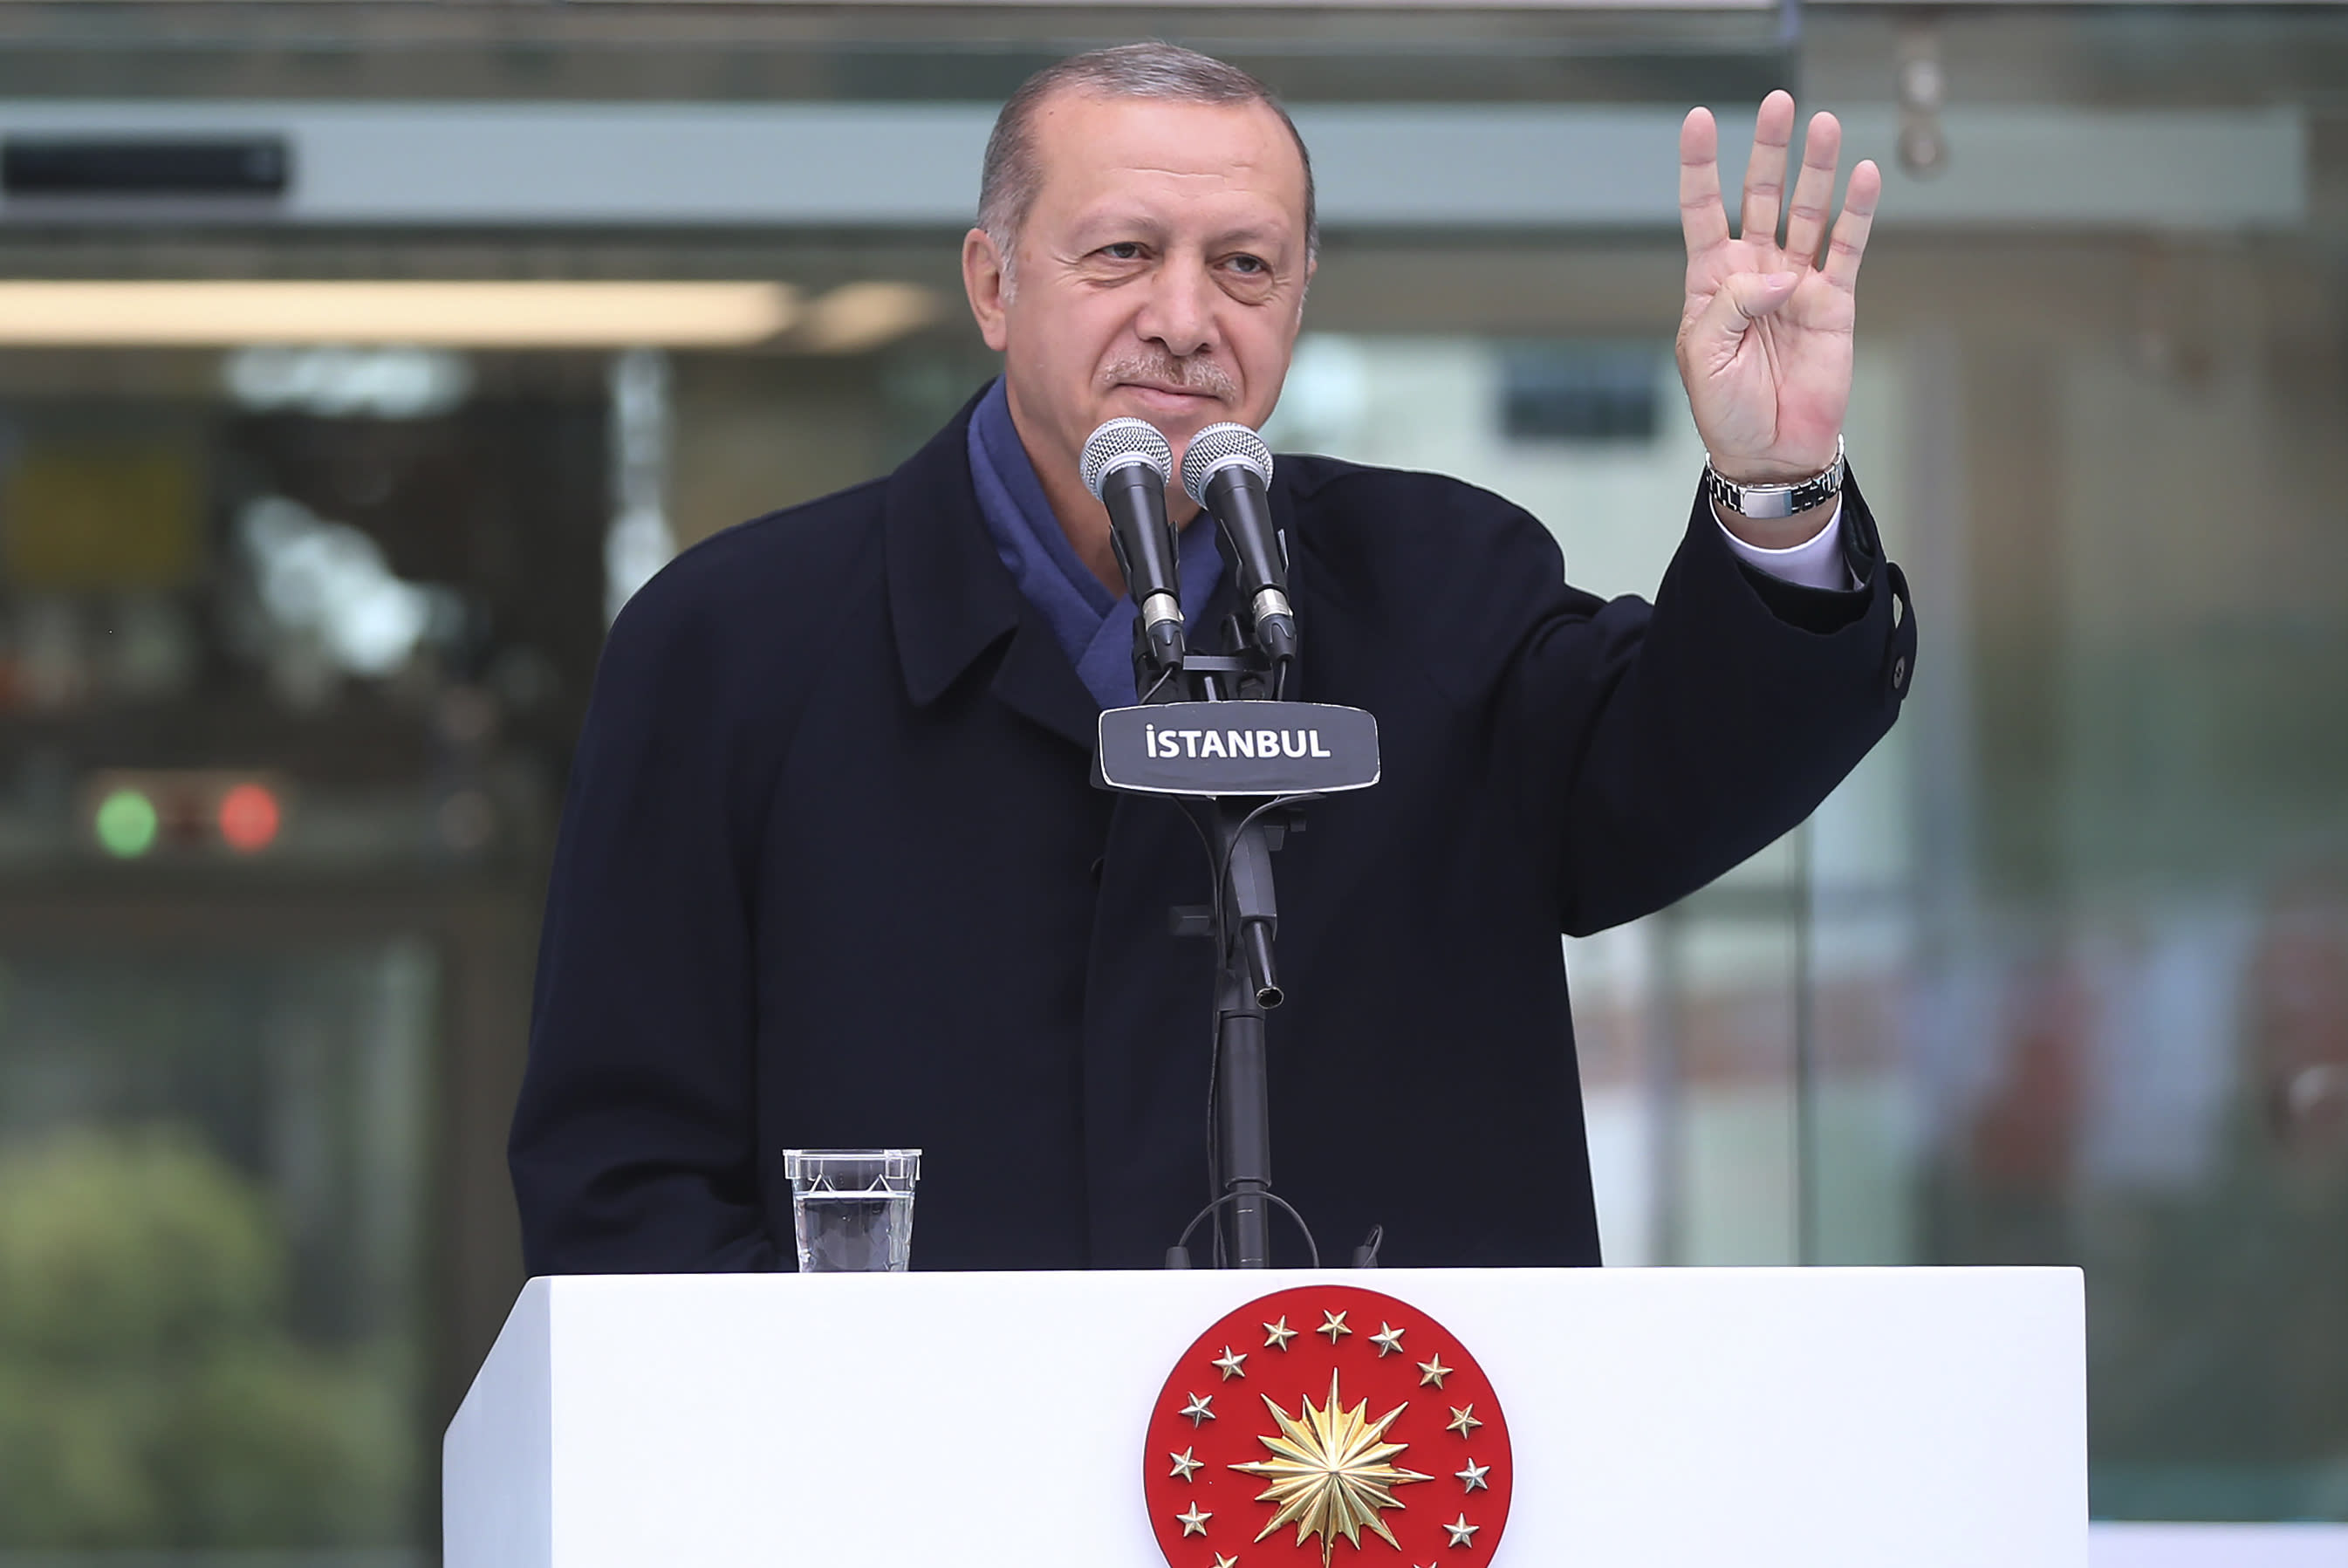 Turkish President Recep Tayyip Erdogan, waves following his speech at an opening ceremony for a new metro station in Istanbul, Sunday, Oct. 21, 2018. Erdogan says he will announce details of the Turkish investigation into the death of Saudi writer Jamal Khashoggi's on Tuesday. (Presidential Press Service via AP, Pool)